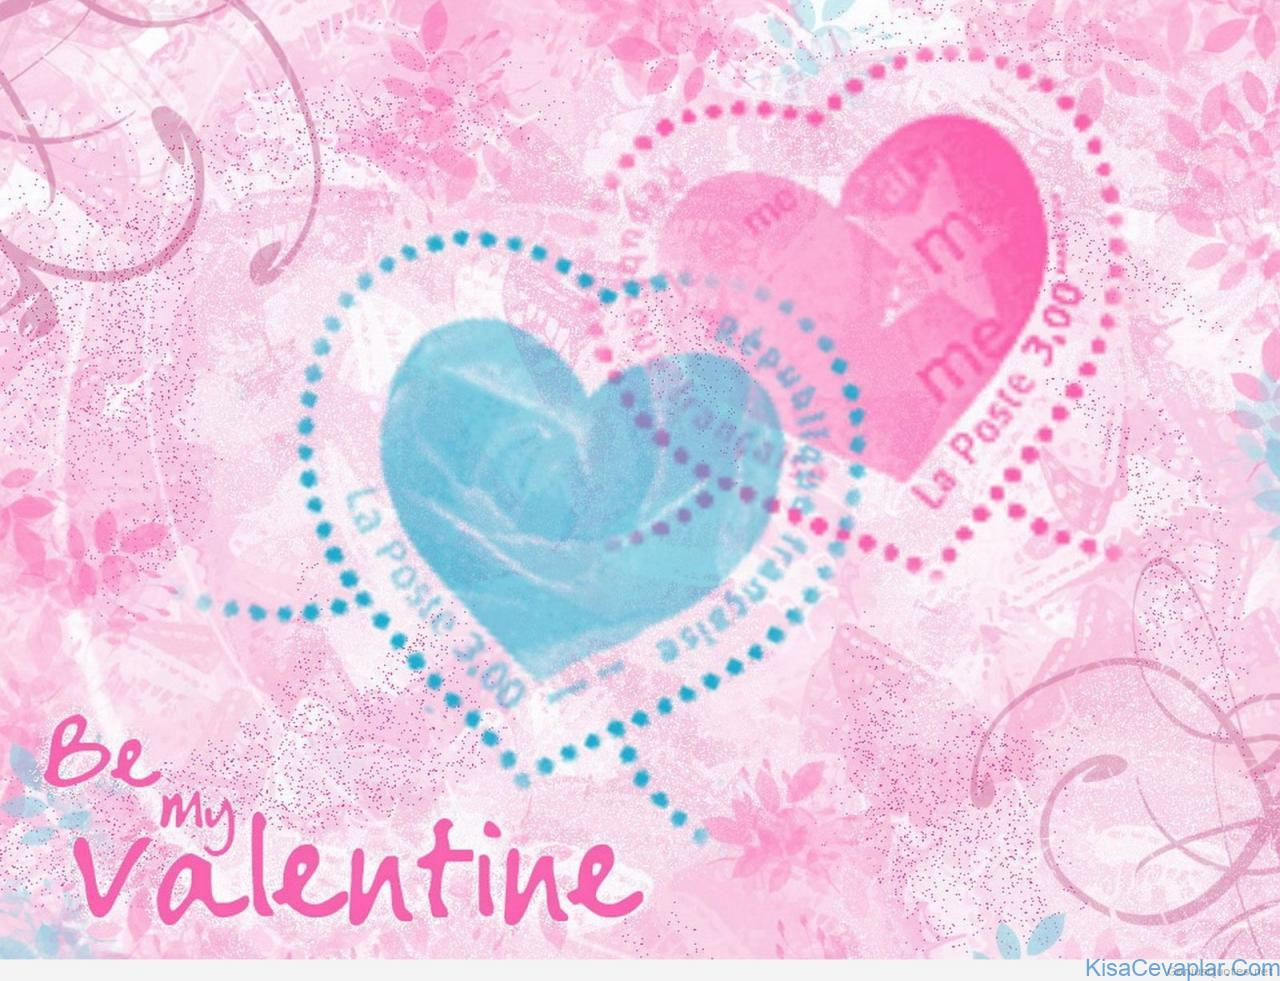 Be My Valentine Heart Stamp Quote